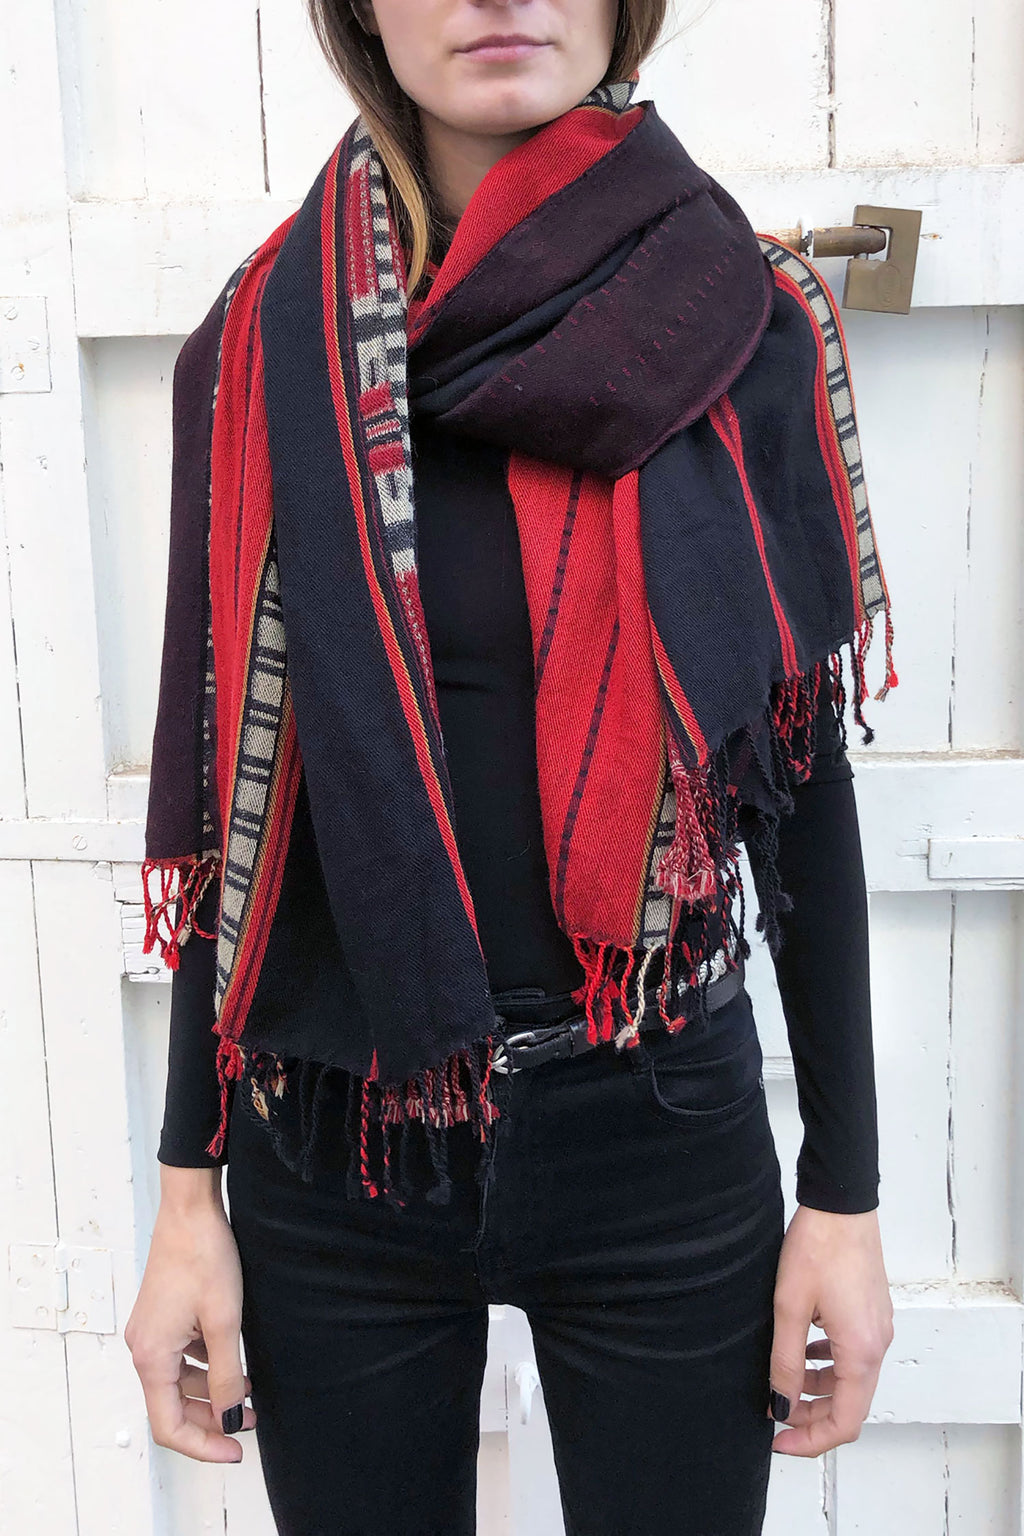 Saramati Scarf Naga Lang Wool Tribal Red Black